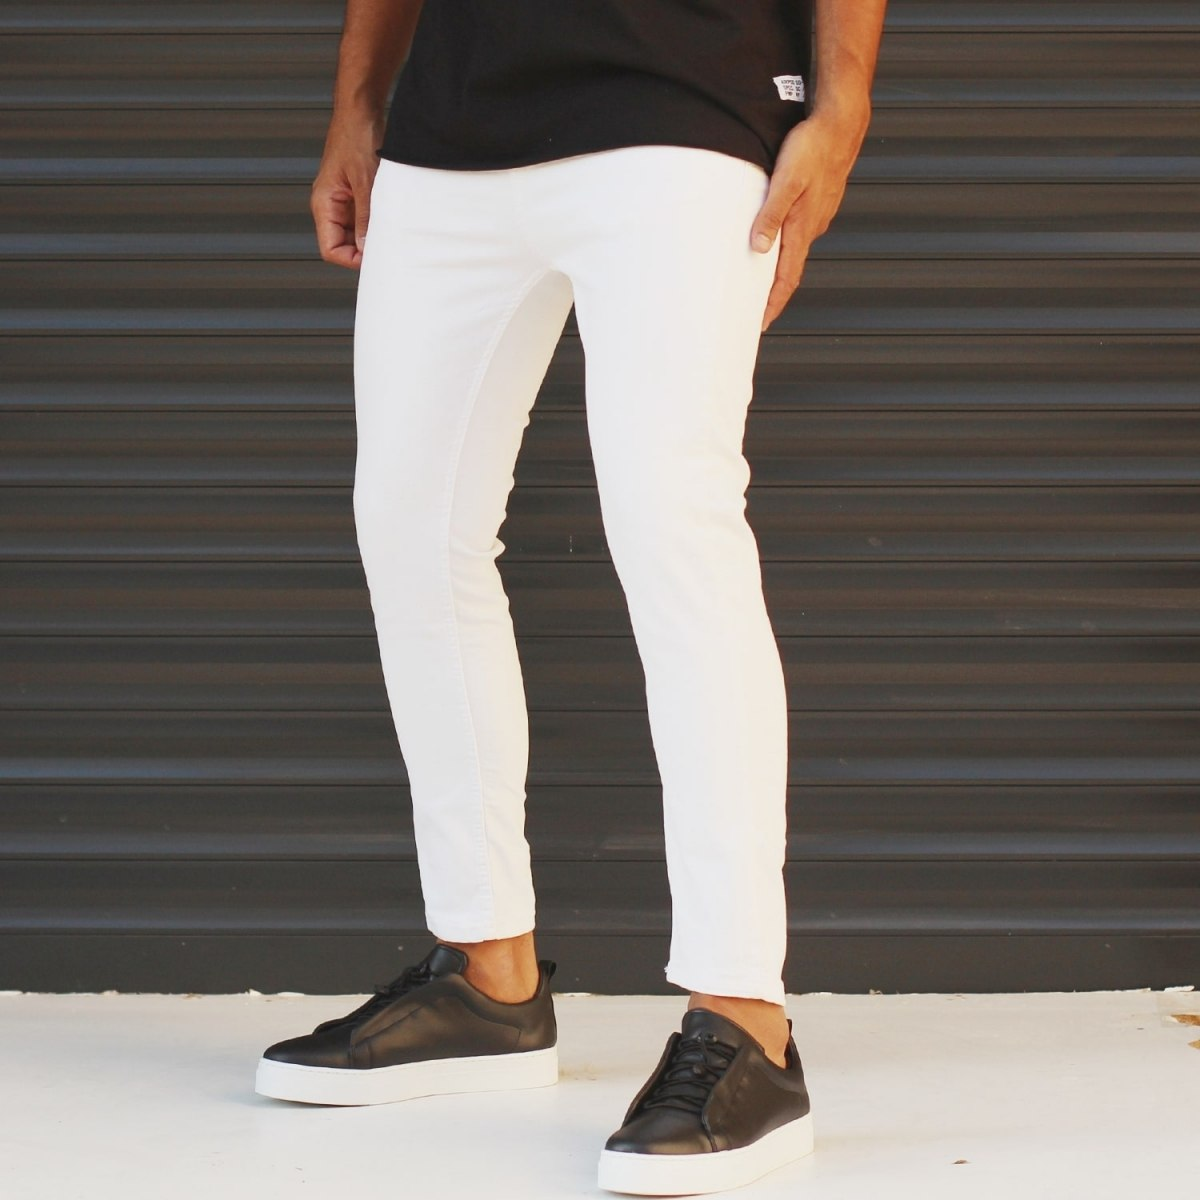 Men's Jeans With Rips In White